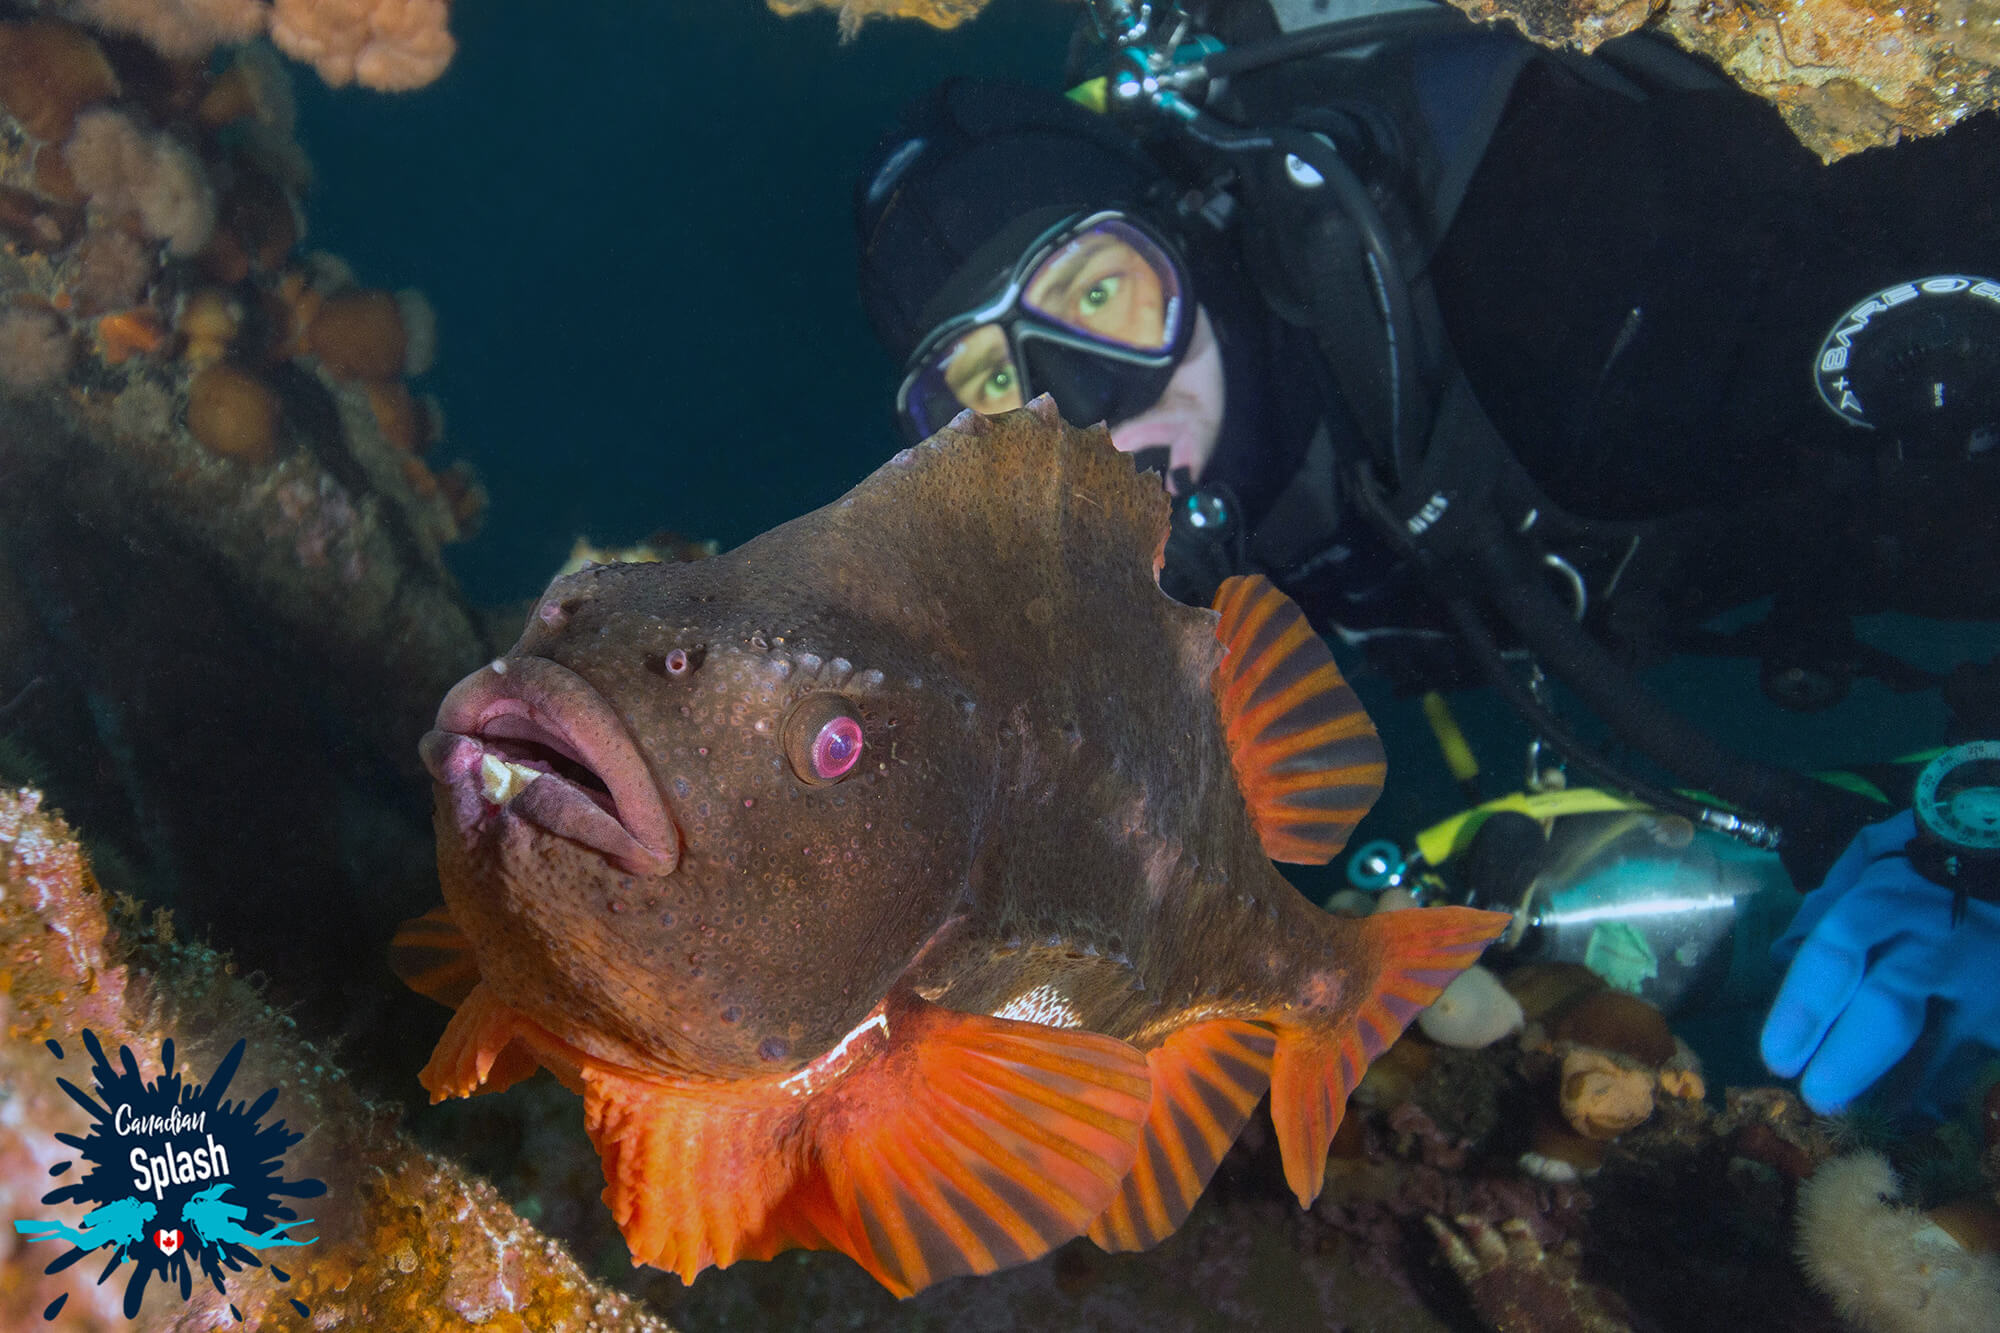 Joey Looking At A Red Male Lumpfish Scuba Diving In Newfoundland, Canadian Splash